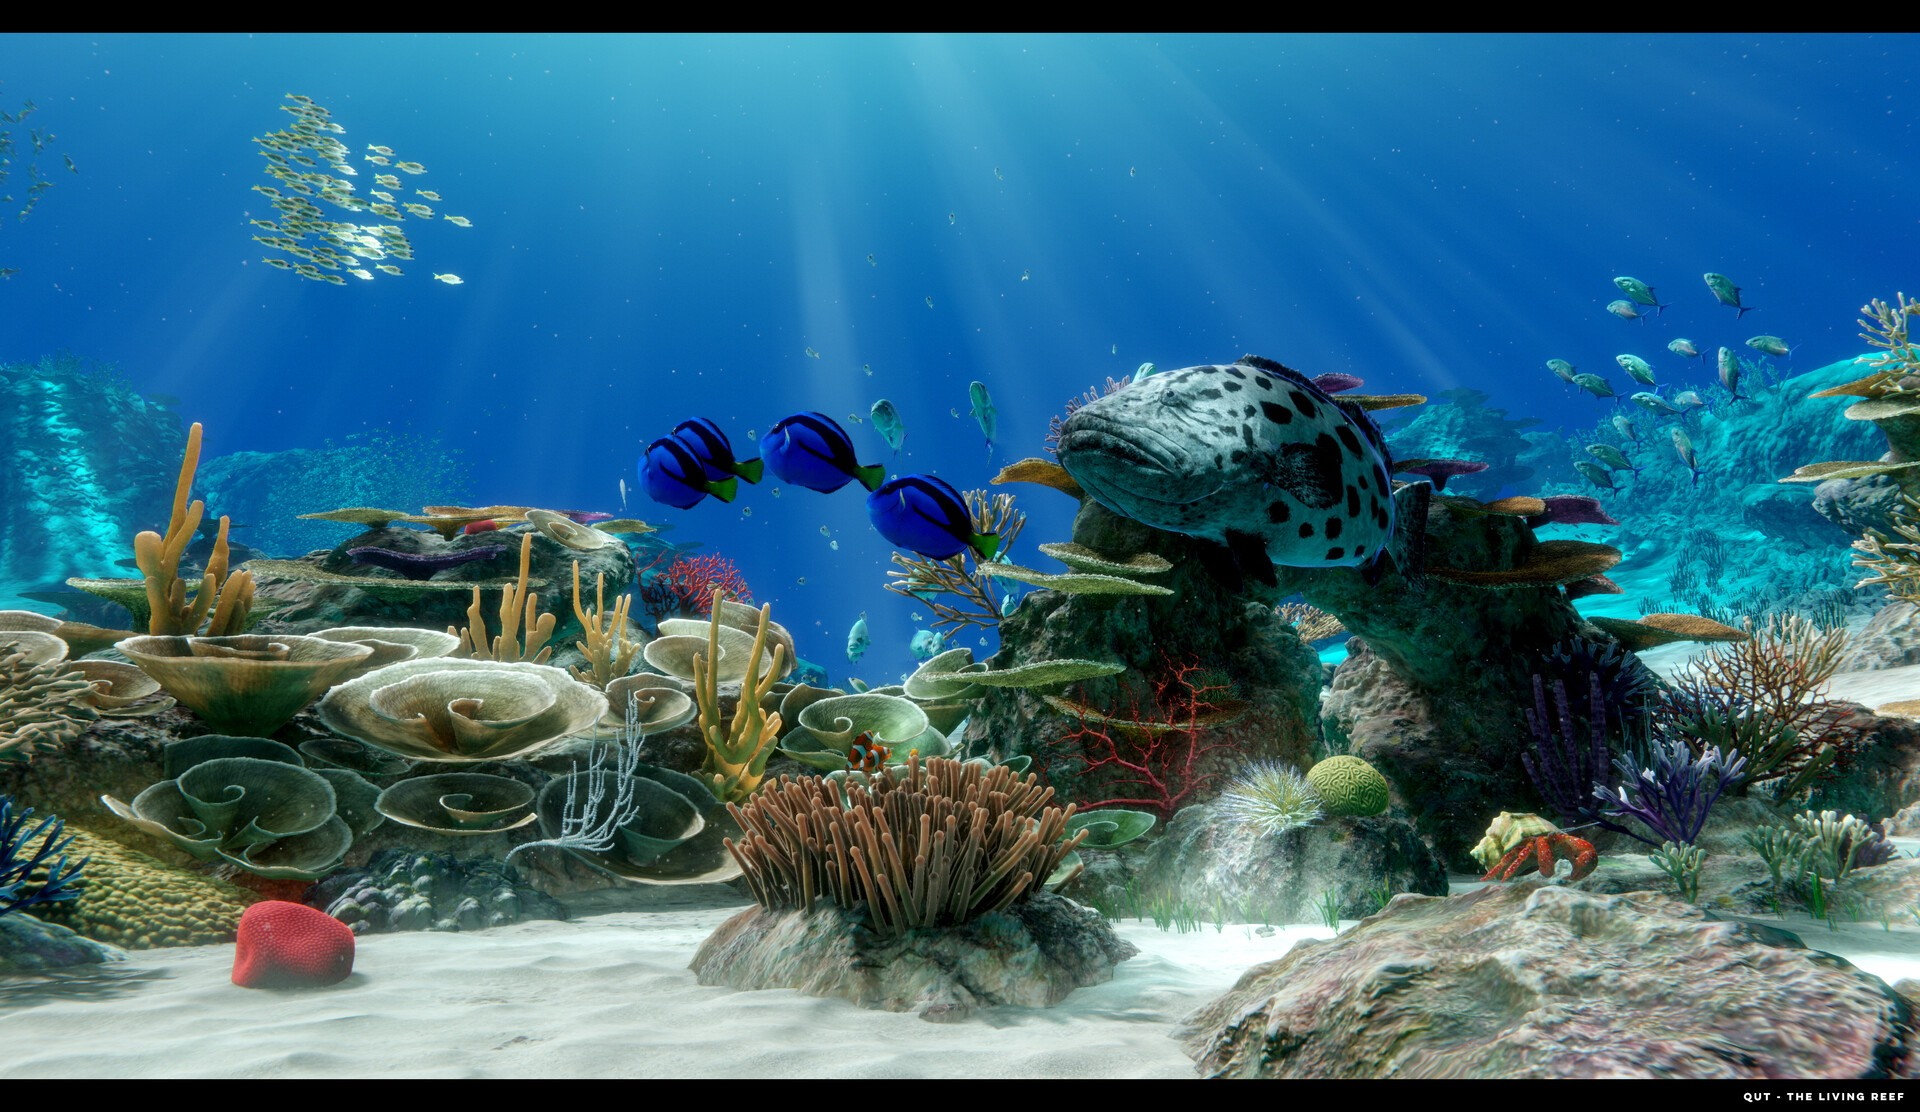 Picture of The Living Reef at QUT by Real-time Artist, Ryan Bargiel.